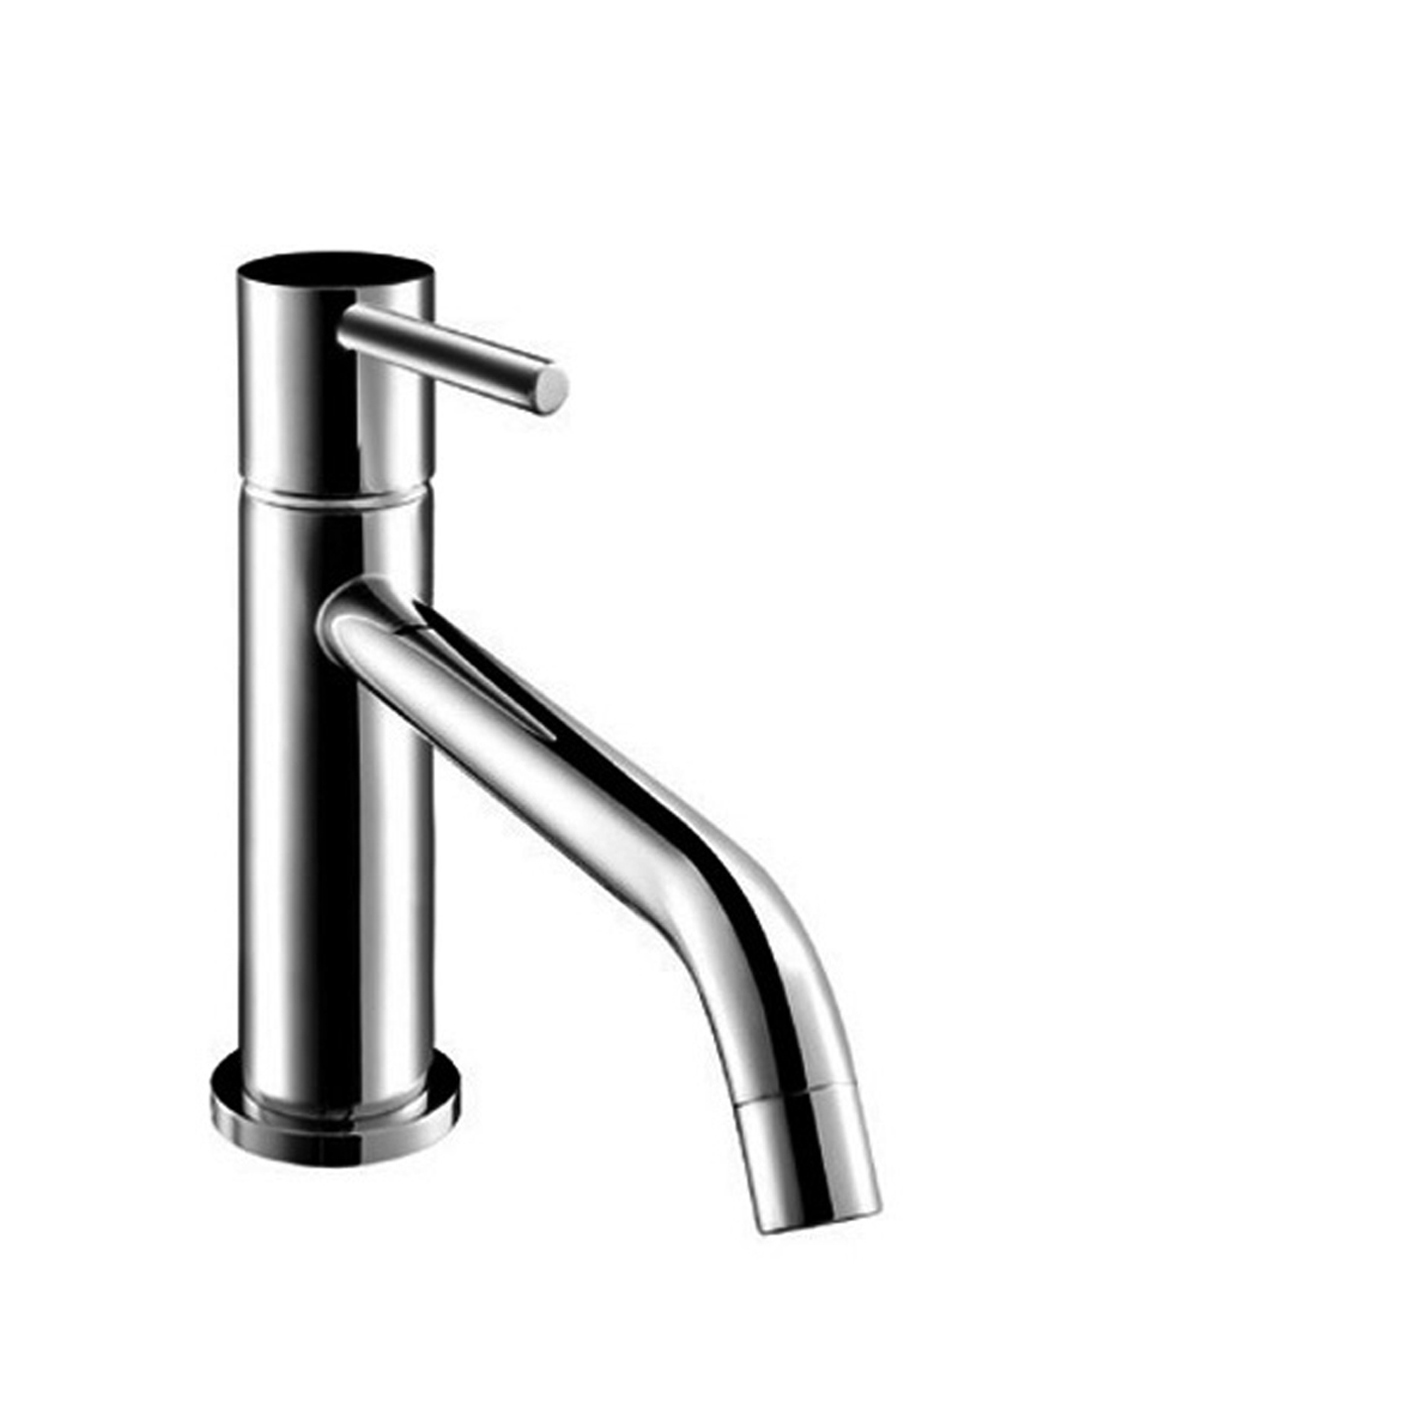 Fantini 2803U Nostromo Single-Control Washbasin Mixer with extended Spout, Handle with Lever - SMALL